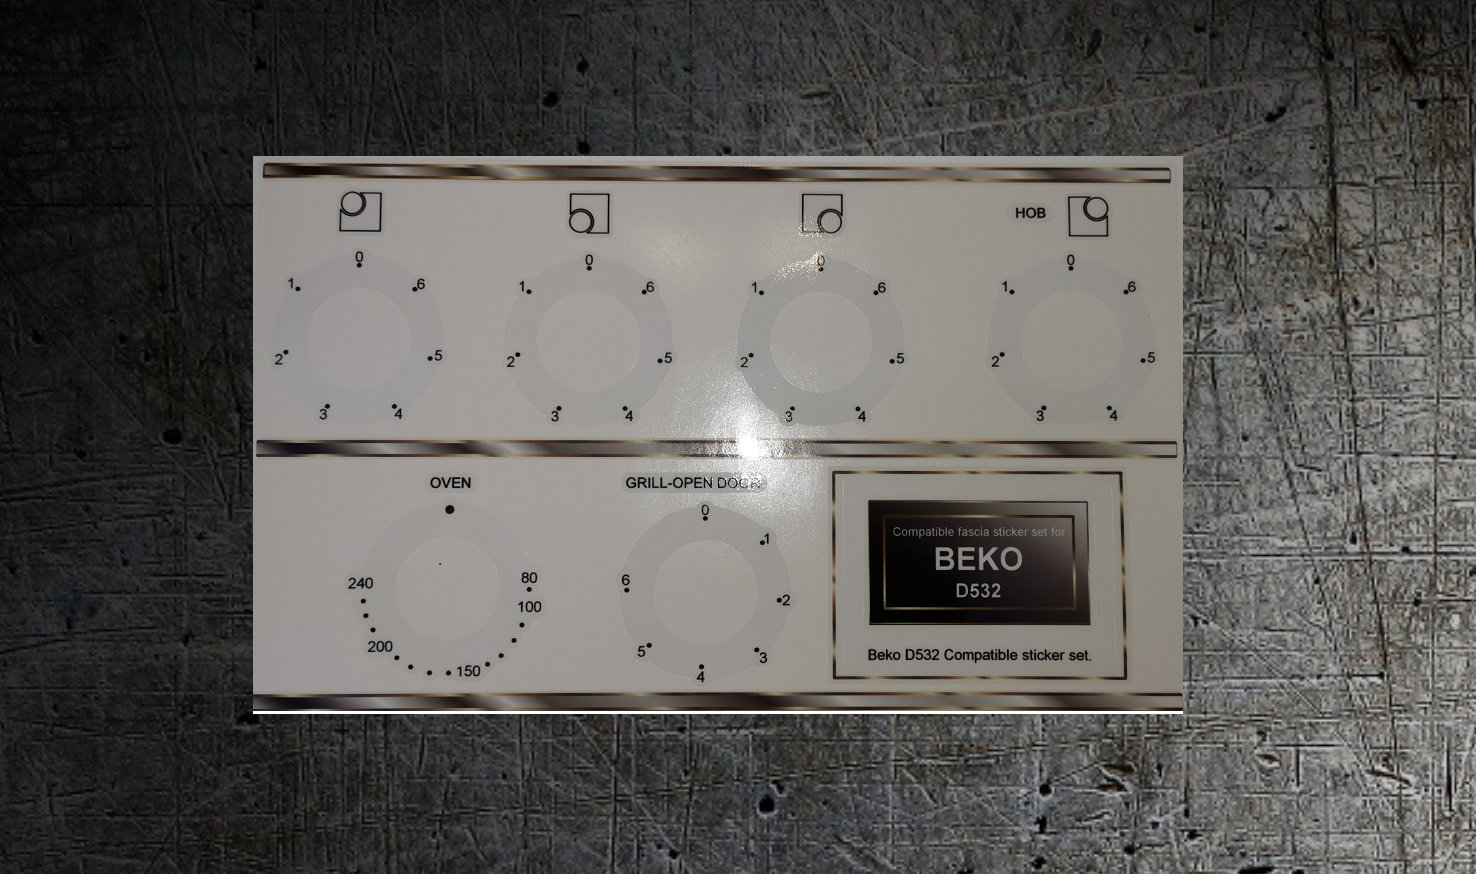 Beko D532 50cm compatible electric cooker fascia stickers.